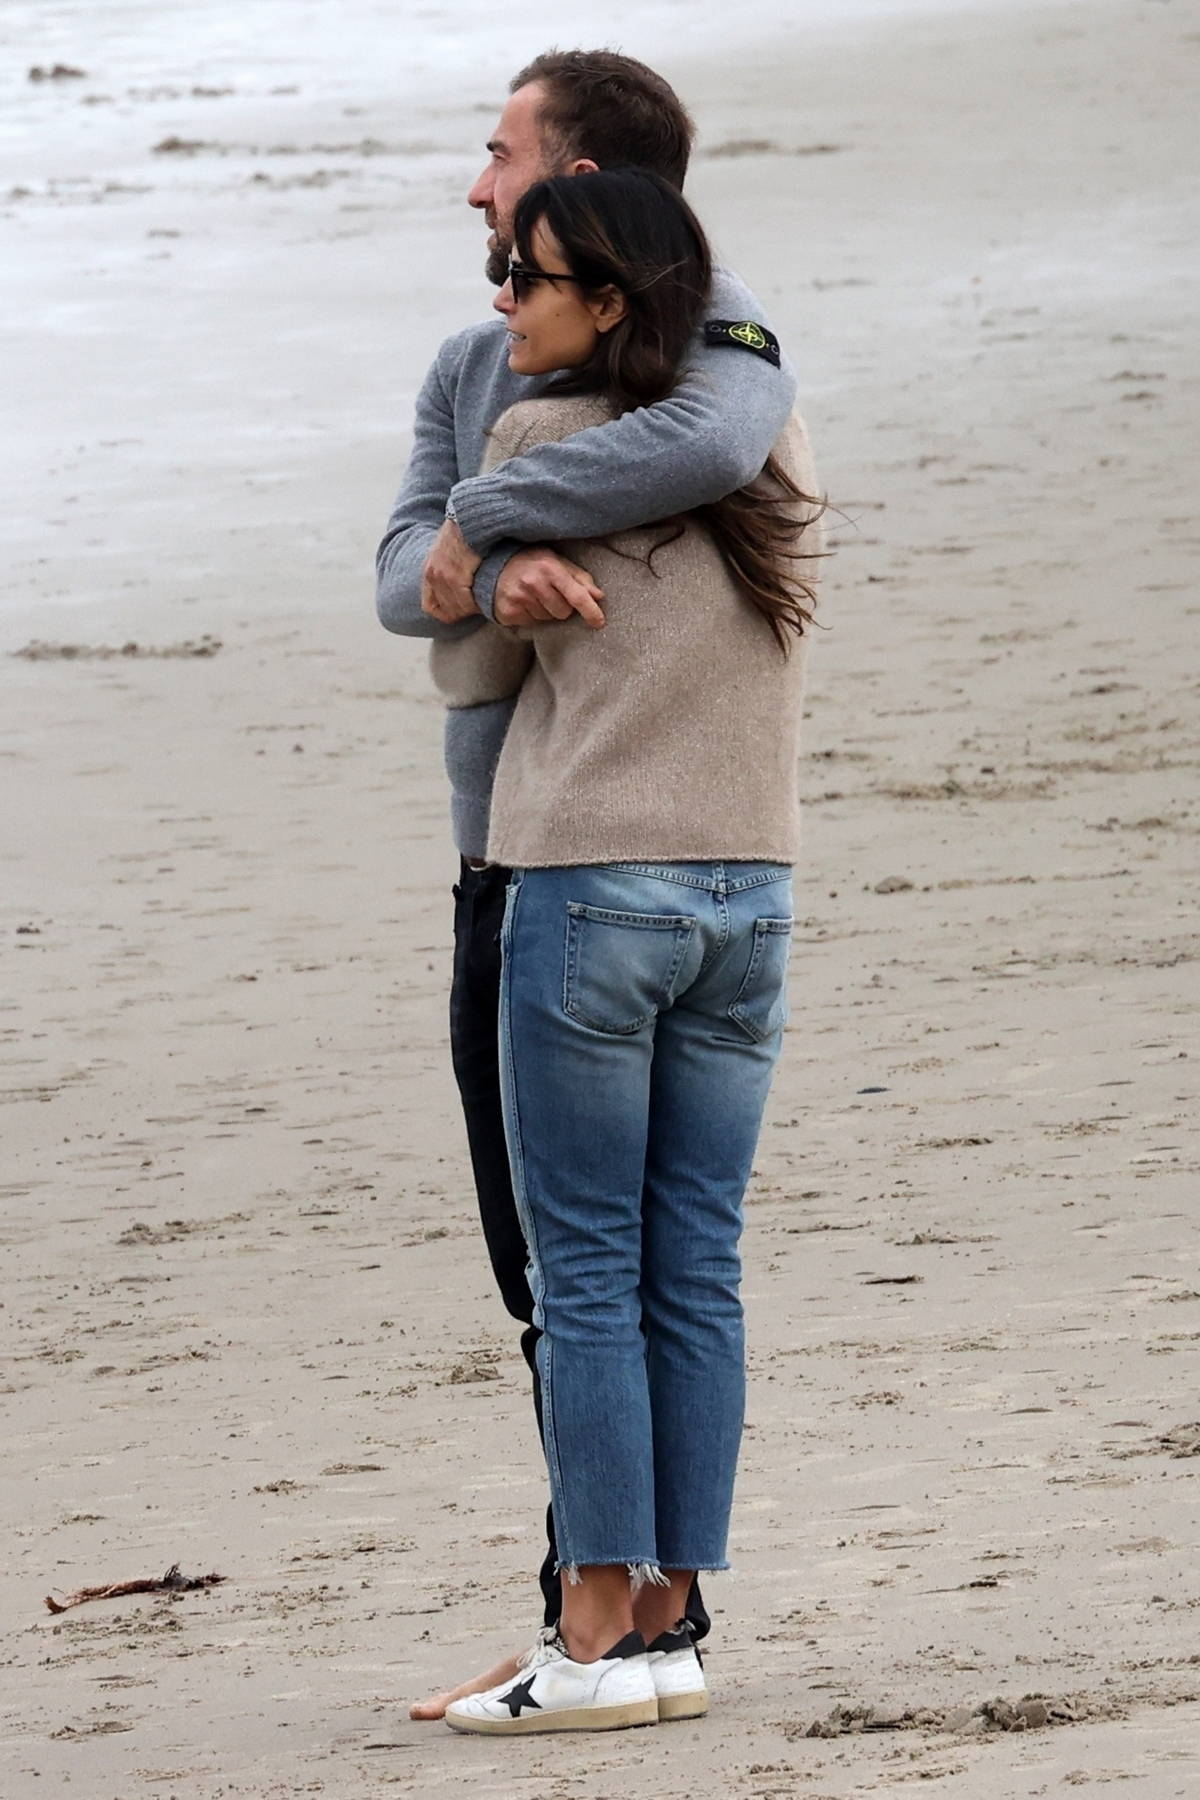 Jordana Brewster and Mason Morfit go on loved up walk on the beach in Santa Monica, California